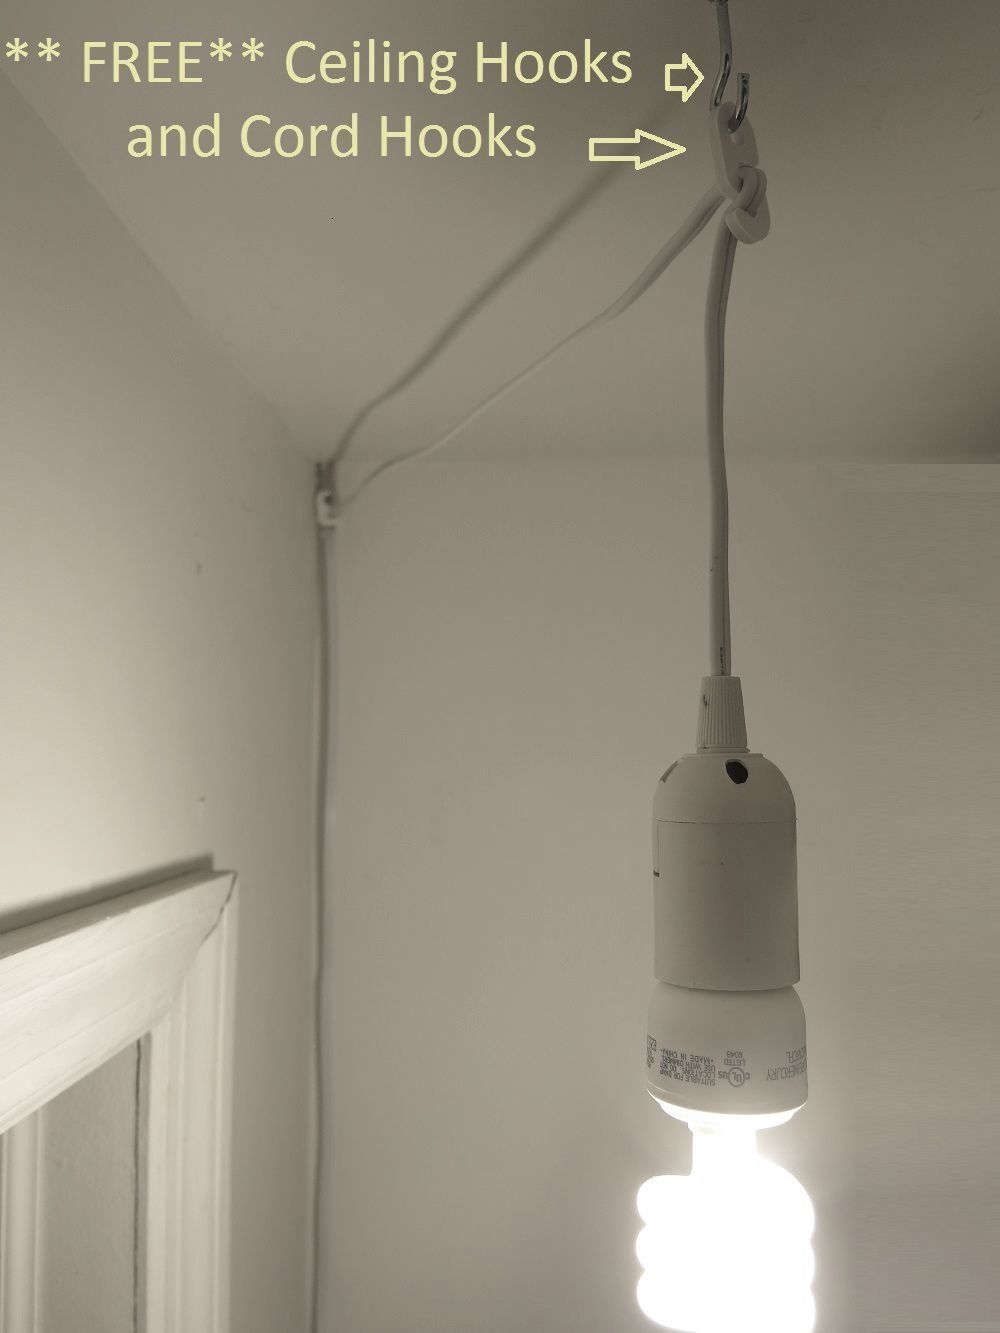 12 Hanging Light Bulb Cord 15 Feet Long Extension And On